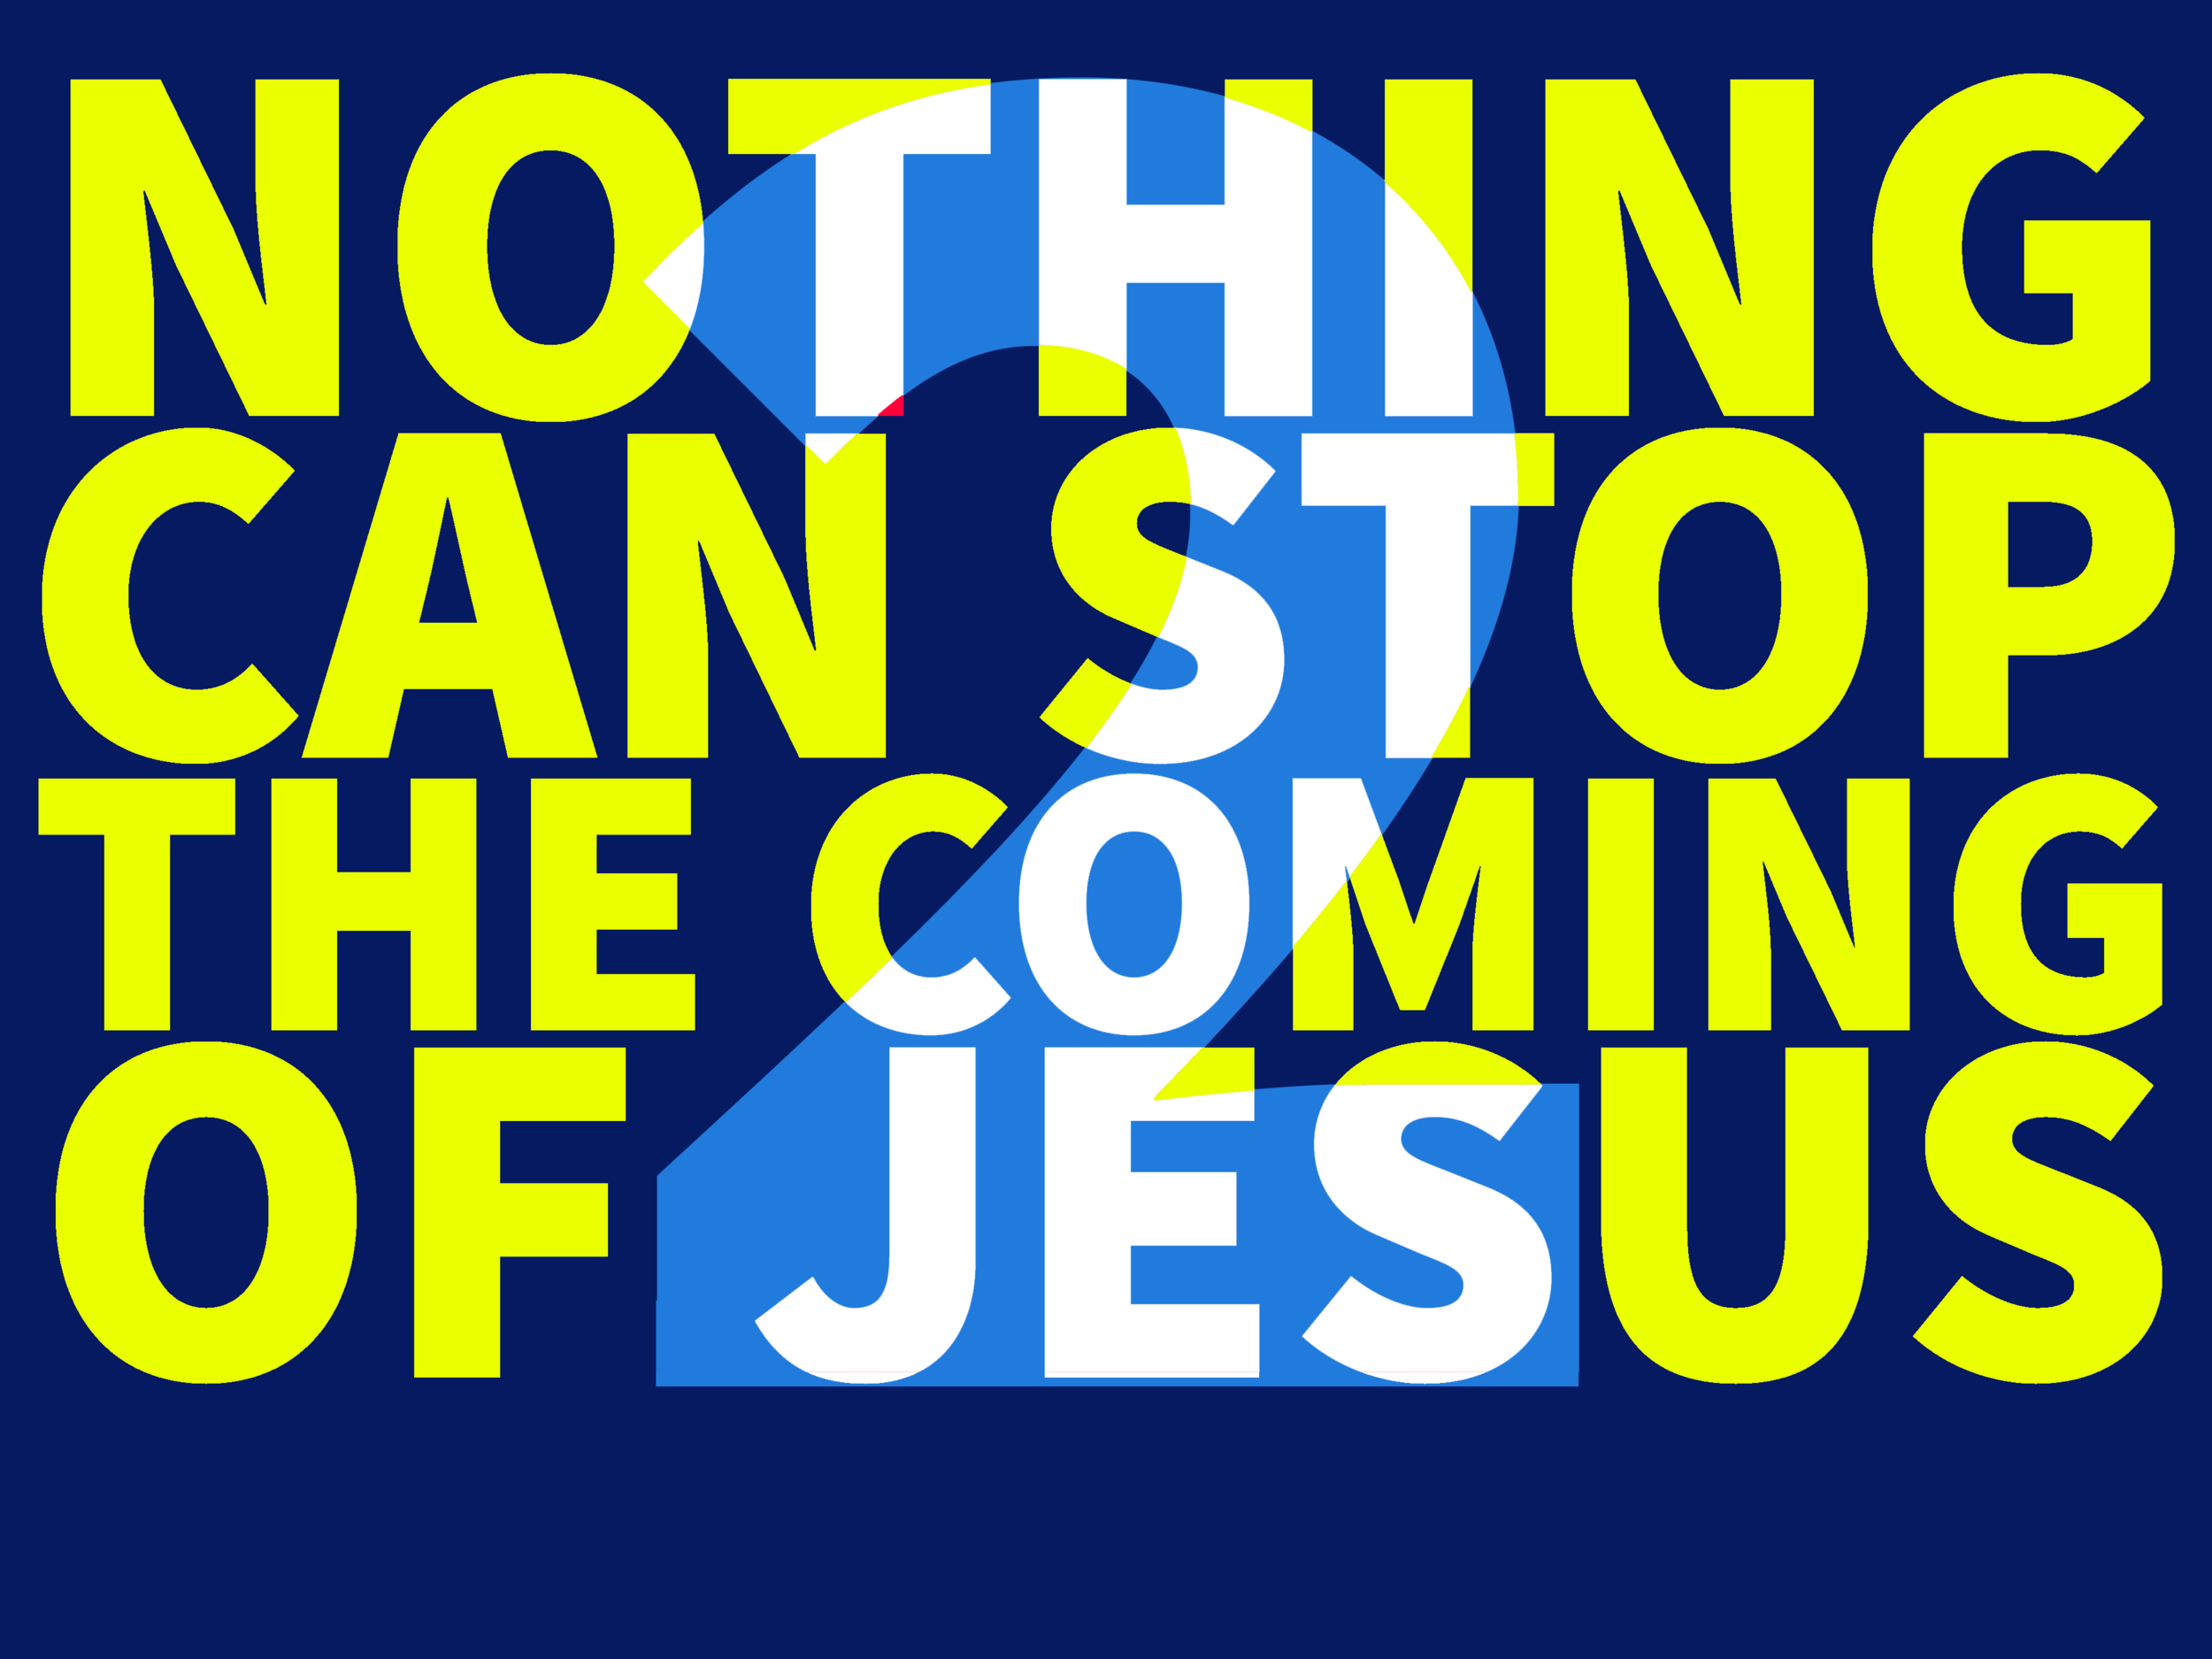 Nothing Can Stop the Coming of Jesus 2 Yellow.png